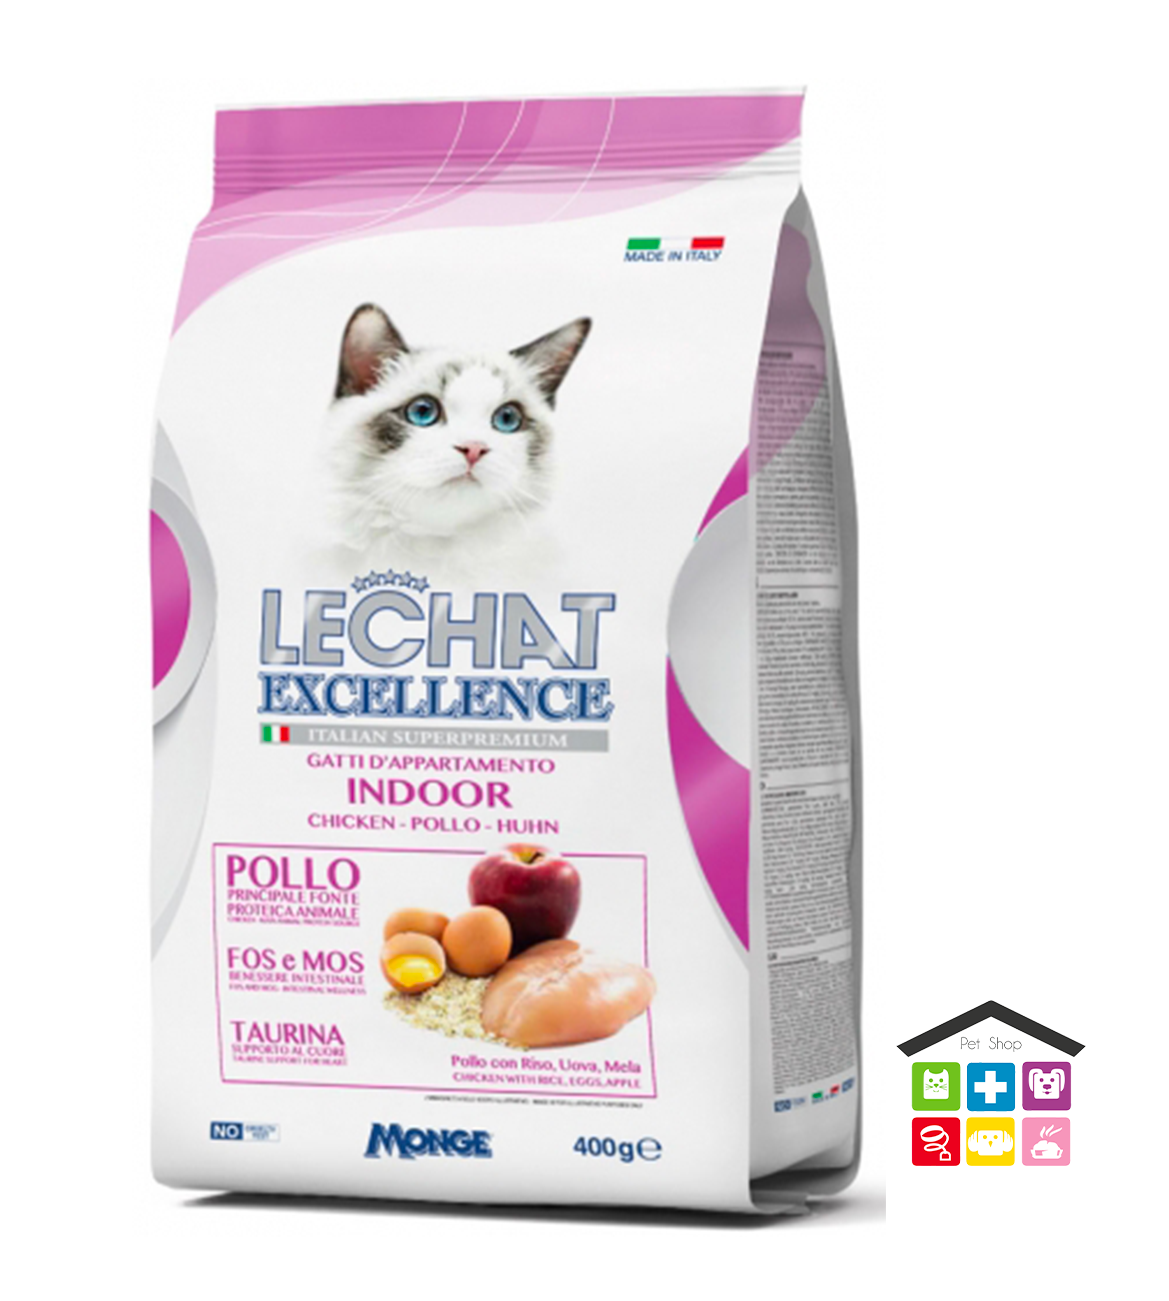 Le Chat excellent indoor –0,400g